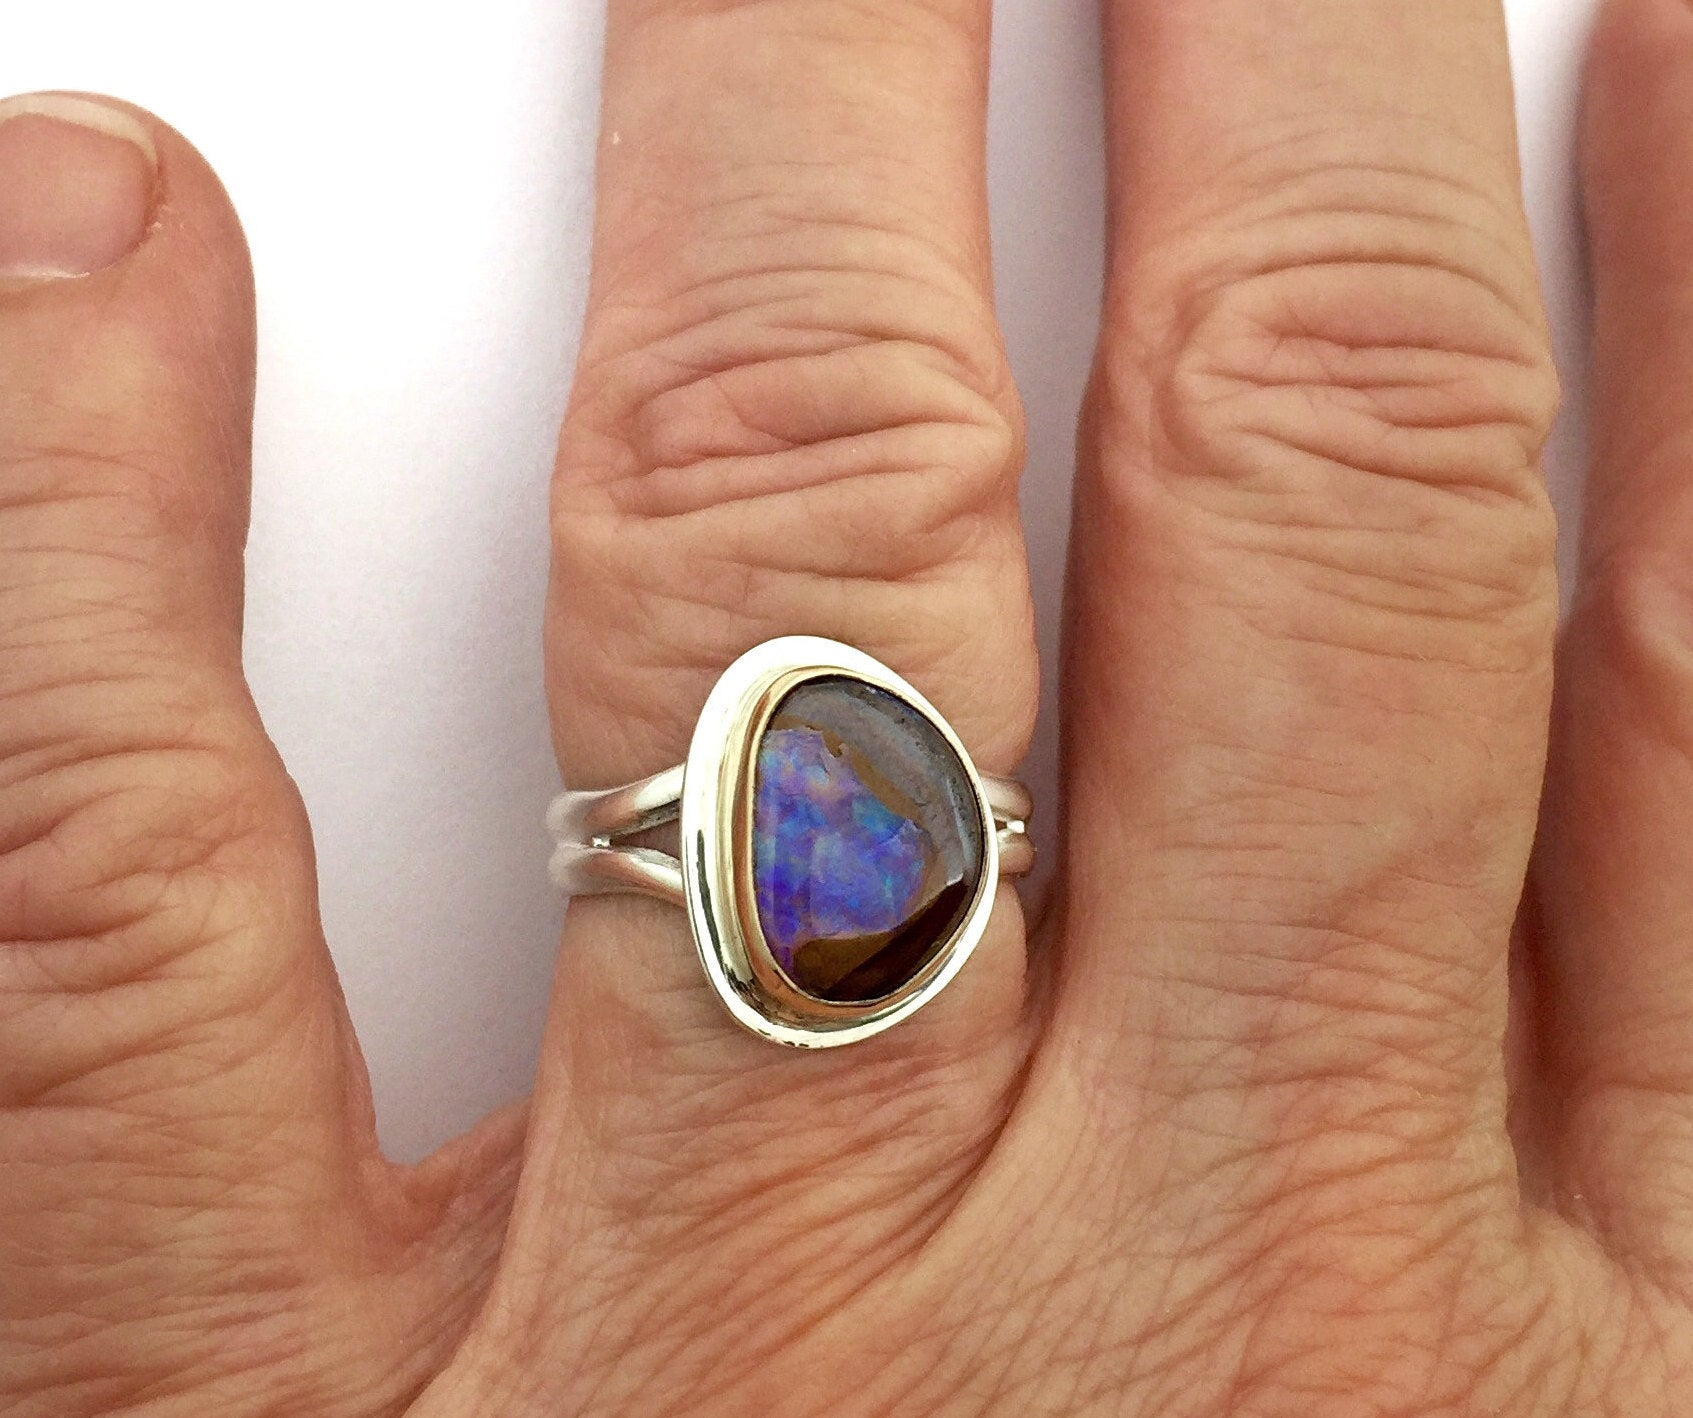 Koroit Opal Ring, Australian Boulder Opal in 14k and sterling silver, Womens Opal Ring, October Birthday Gift, Purple Stone Ring, Boho ring